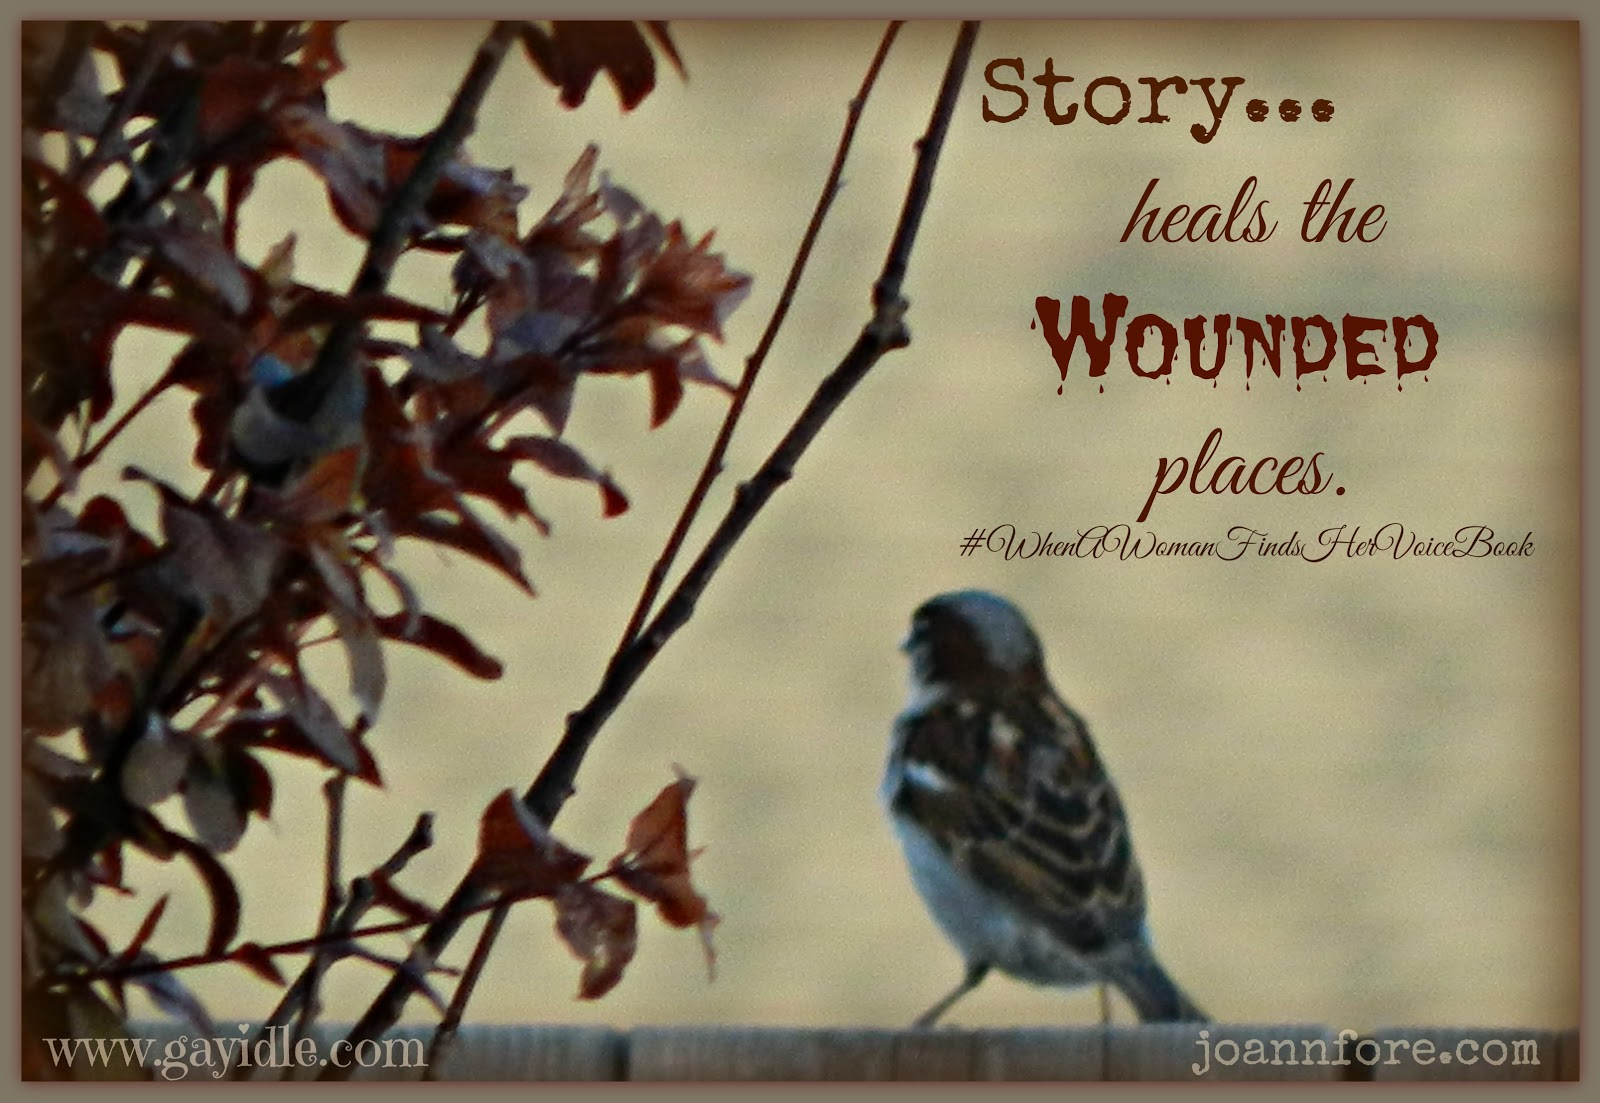 Come Full Circle Quotes: Captive Heart: Healed Or Walking Dead? Choose Now